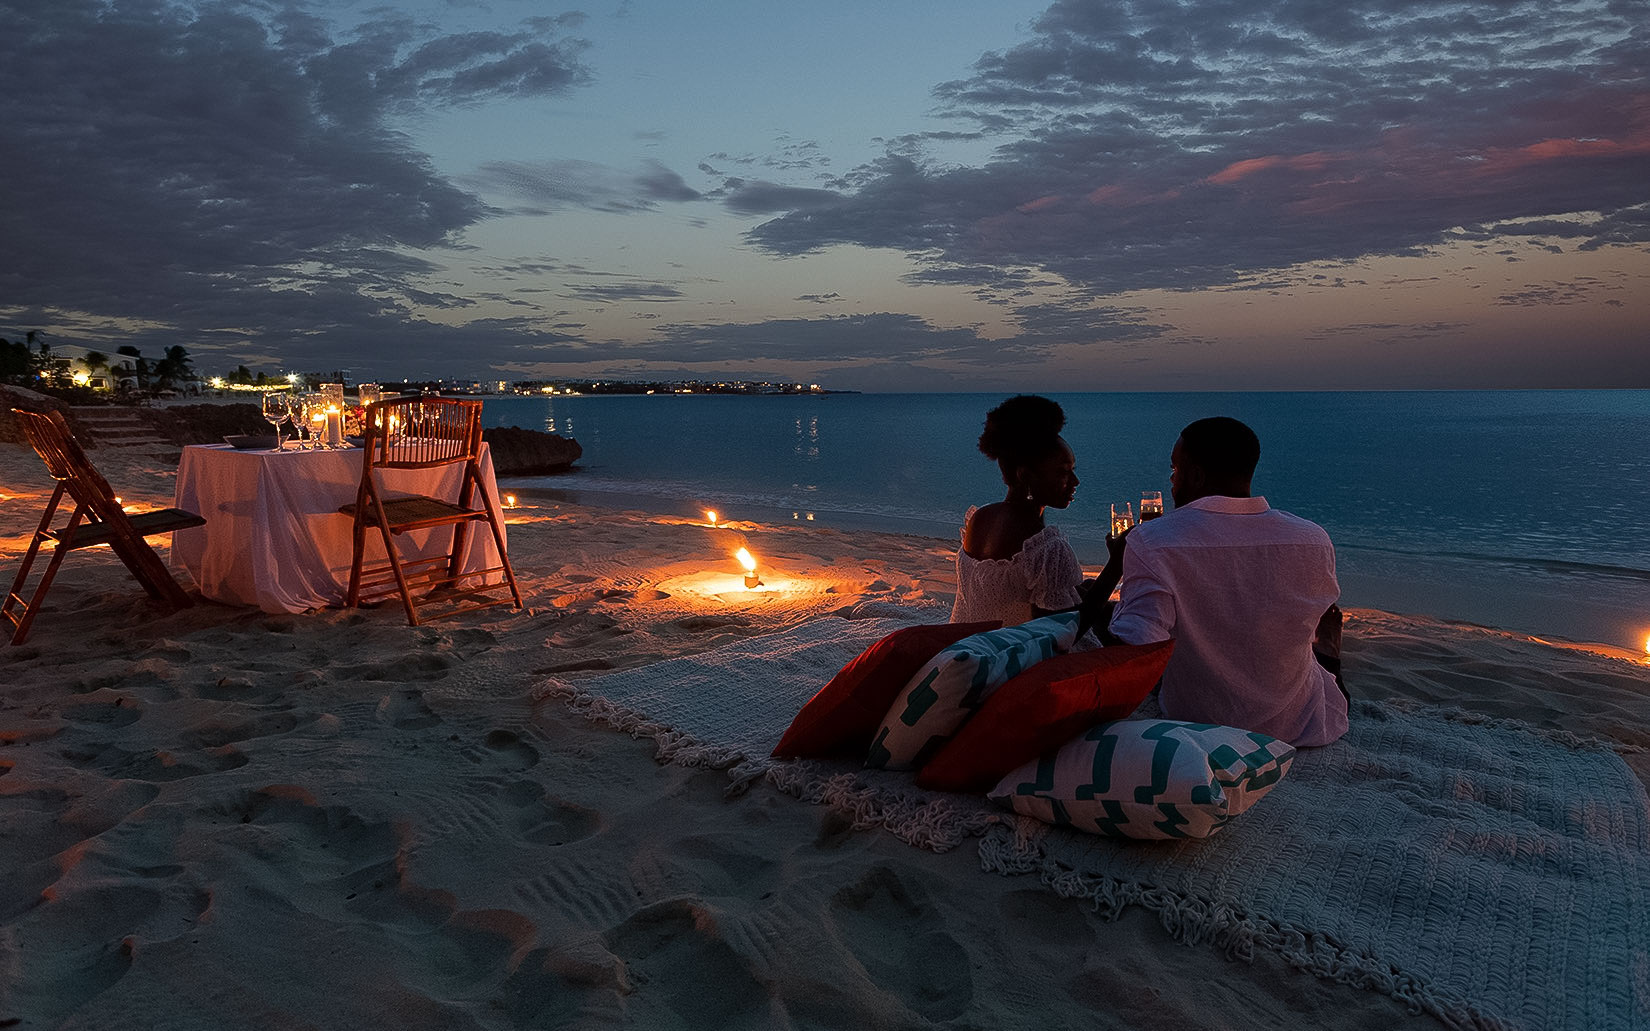 couple on nighttime beach date with warm lights in sand